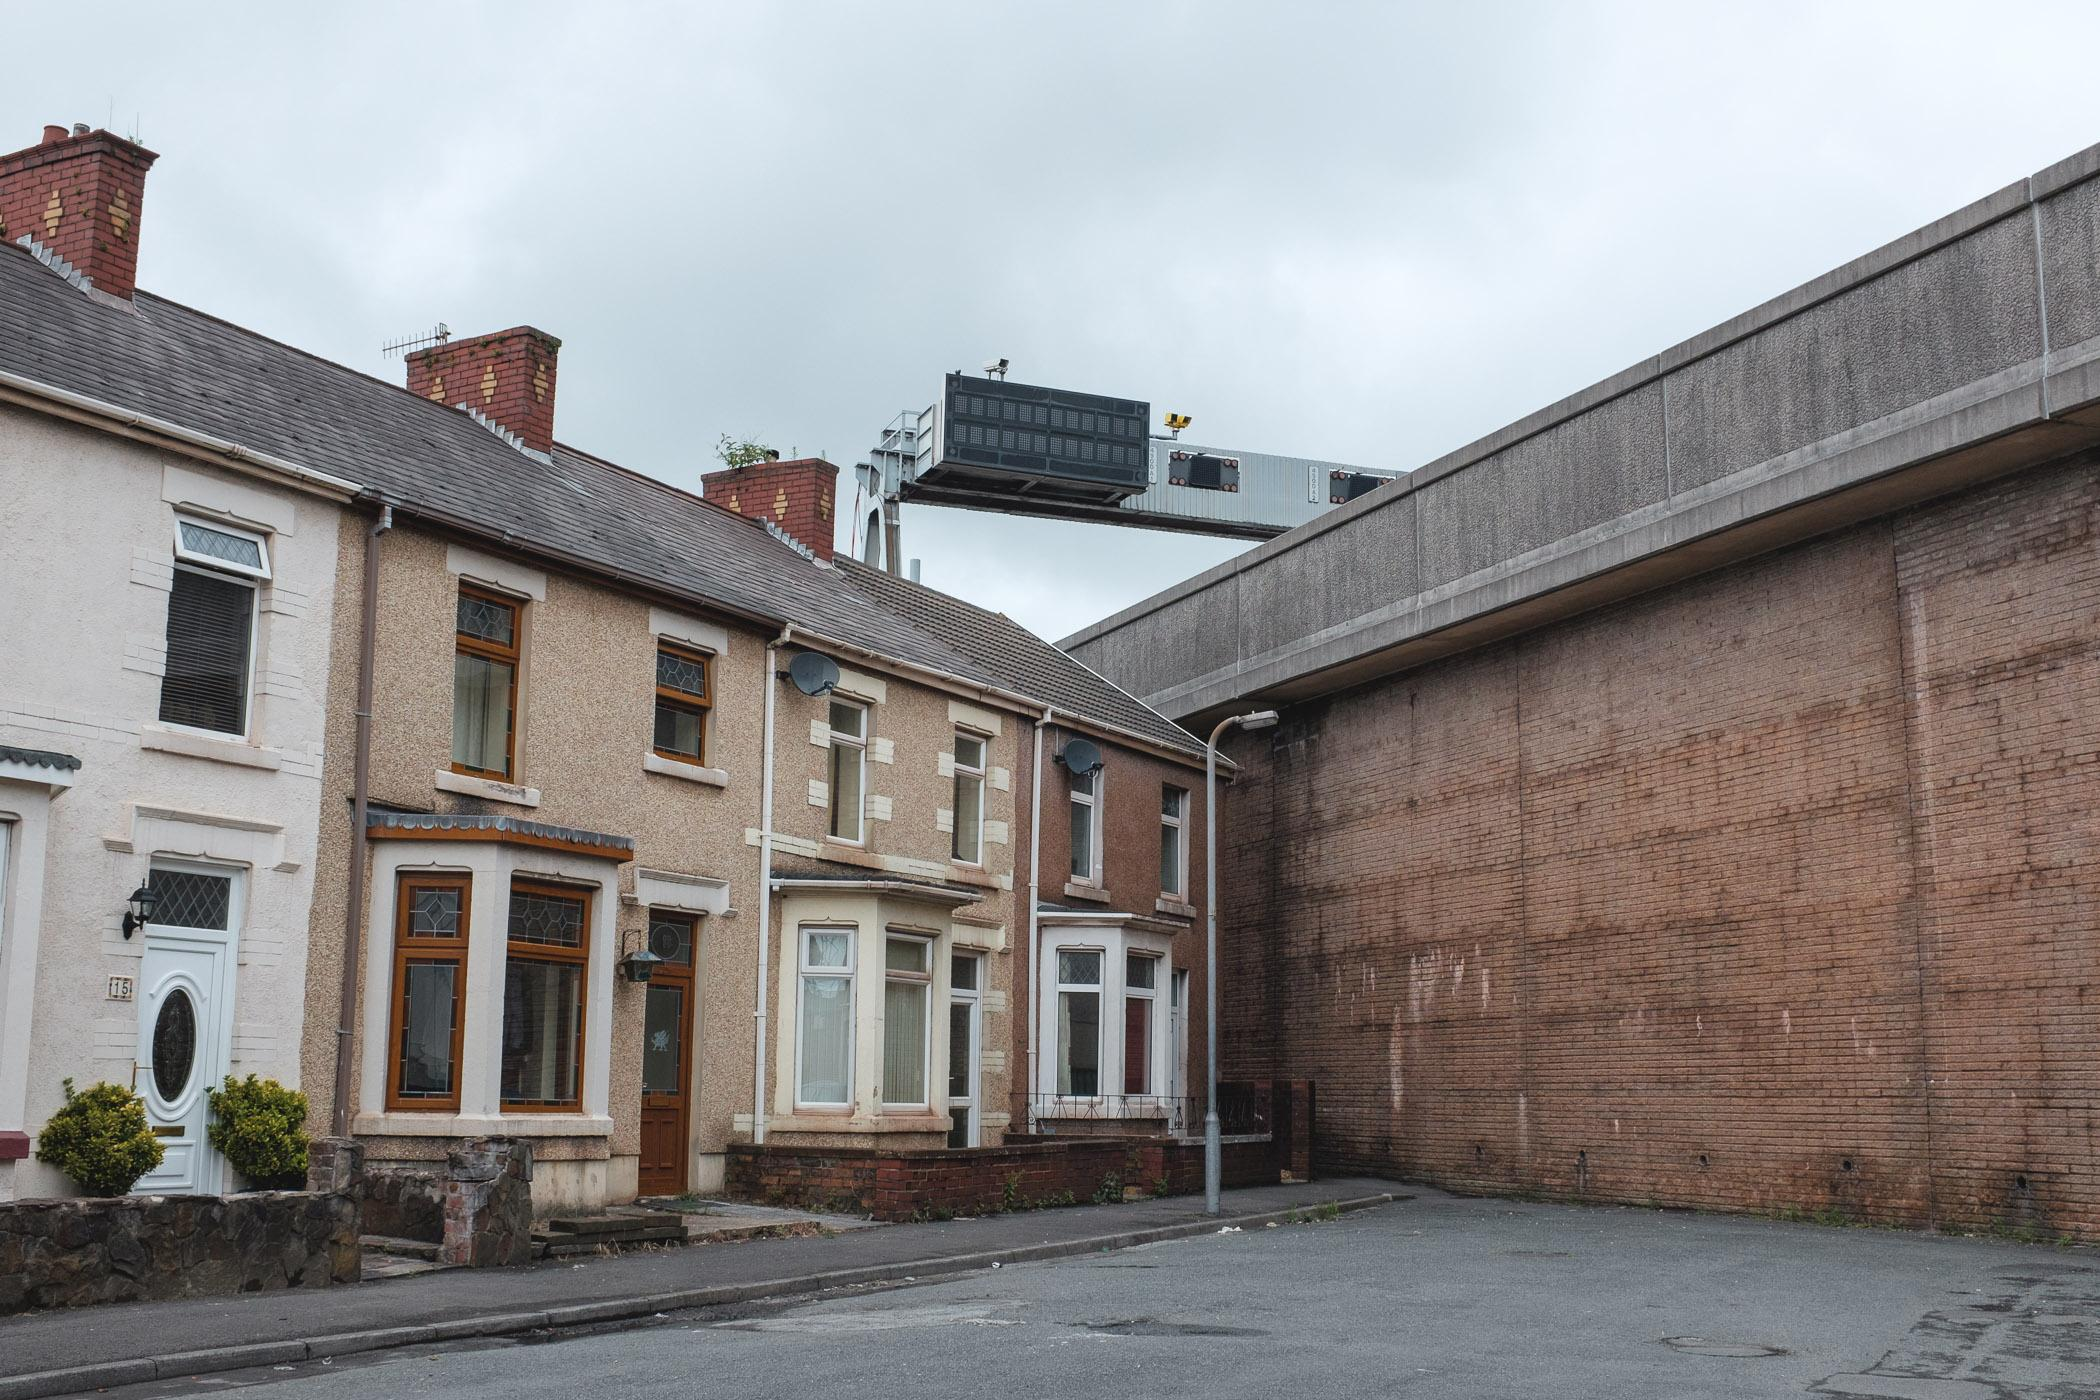 Pont Street, Port Talbot. Over 200 homes, 3 churches and several schools were destroyed to build the M4 bypass in Port Talbot. Those previously living in quiet terraces were faced with living directly against the new motorway, dealing with noise and pollution